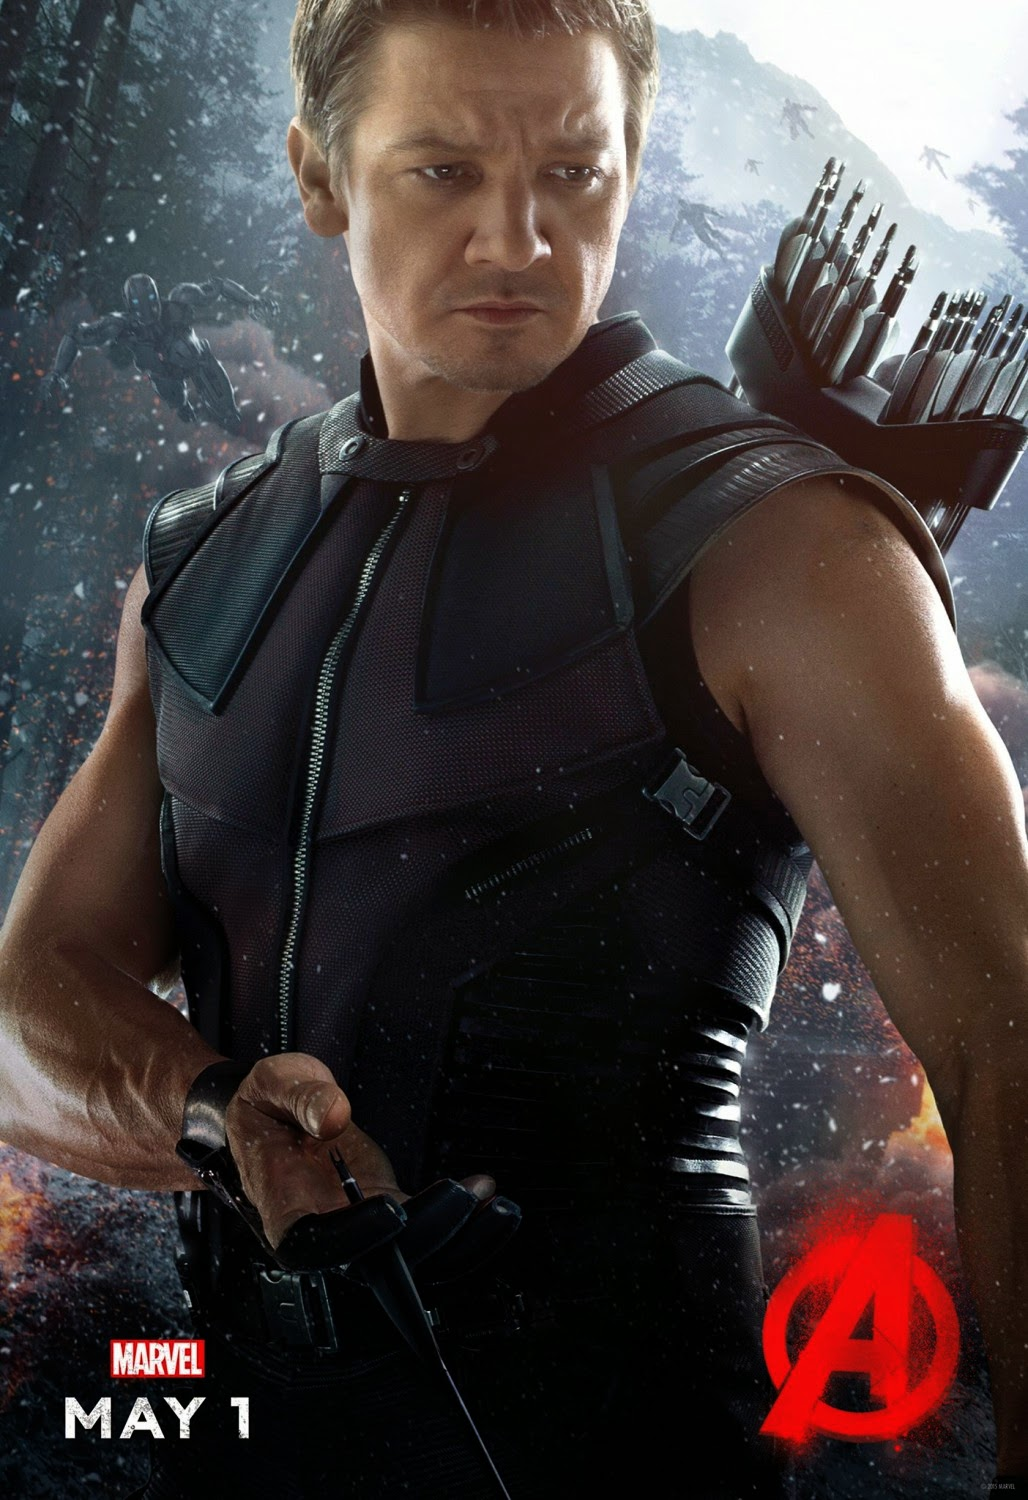 Marvel's Avengers Age of Ultron Character Movie Poster Set - Jeremy Renner as Hawkeye